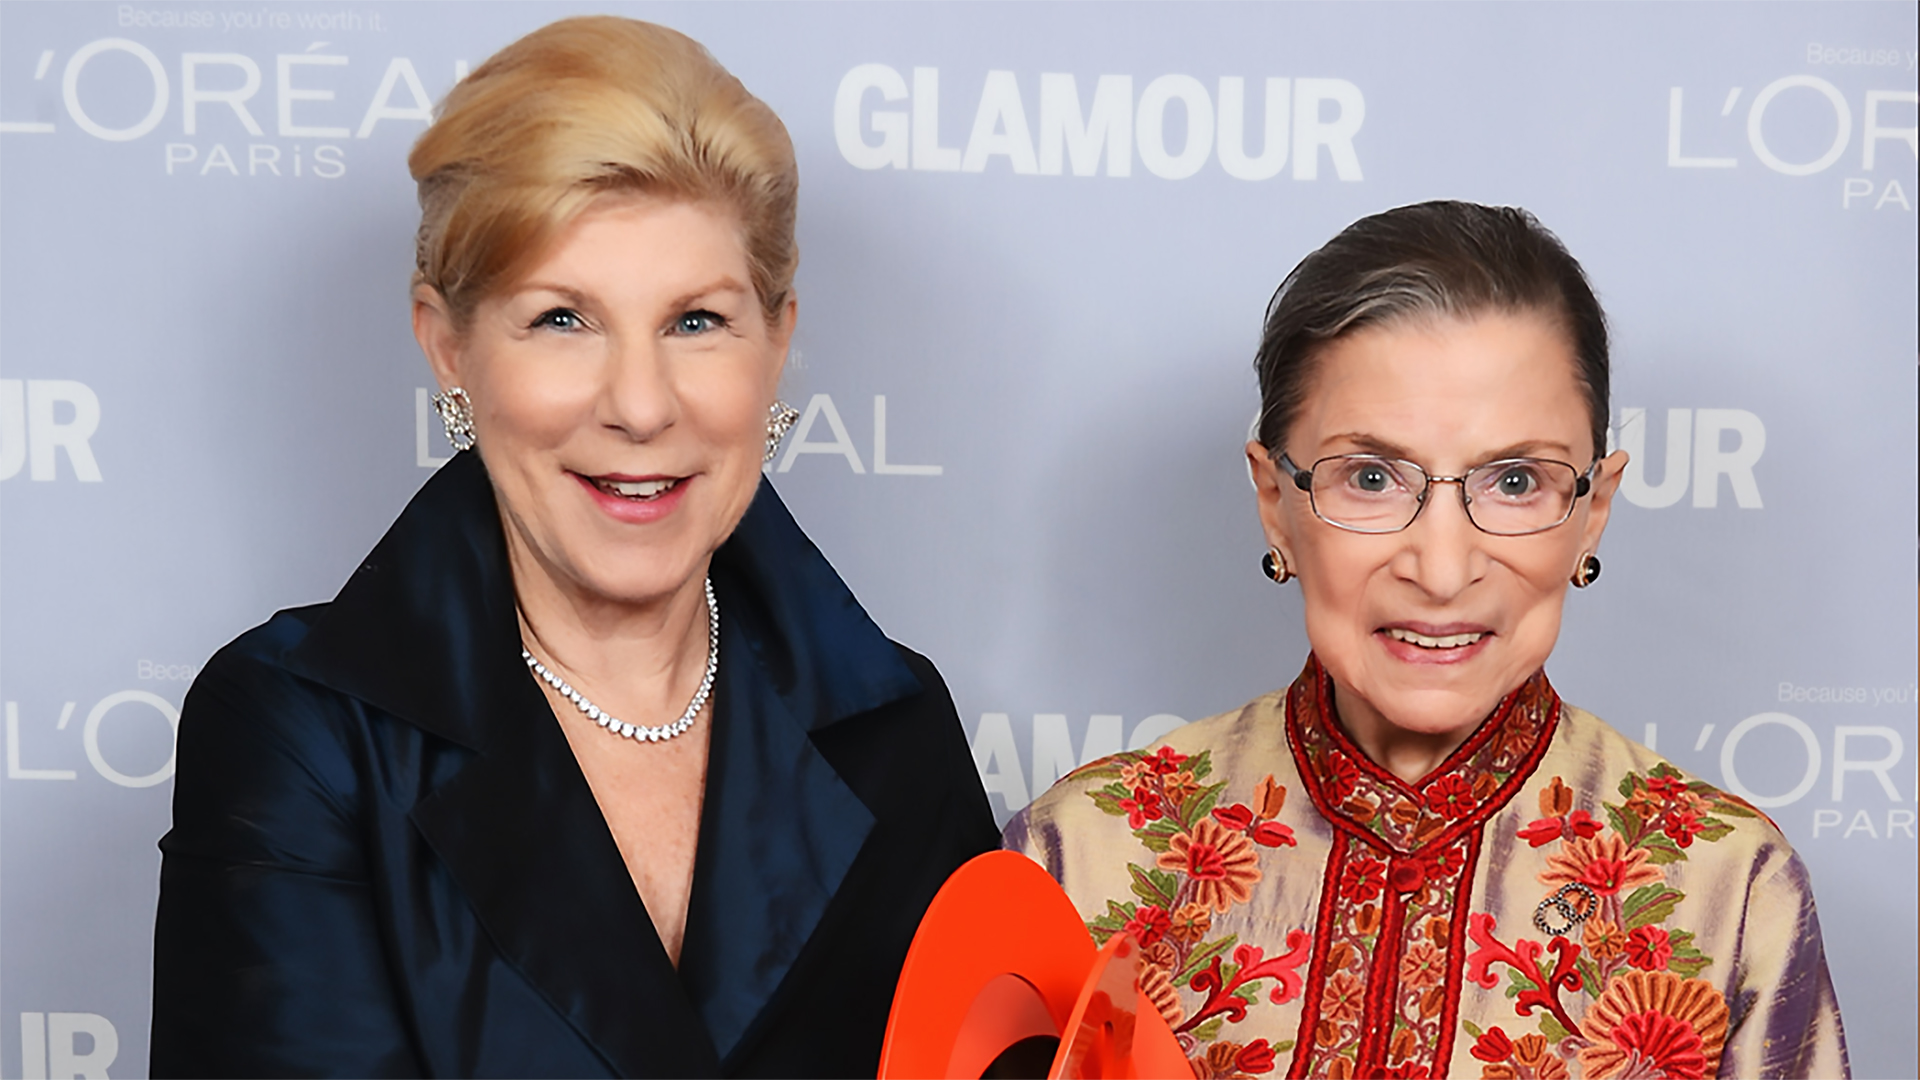 Remembering the Life and Career of RBG